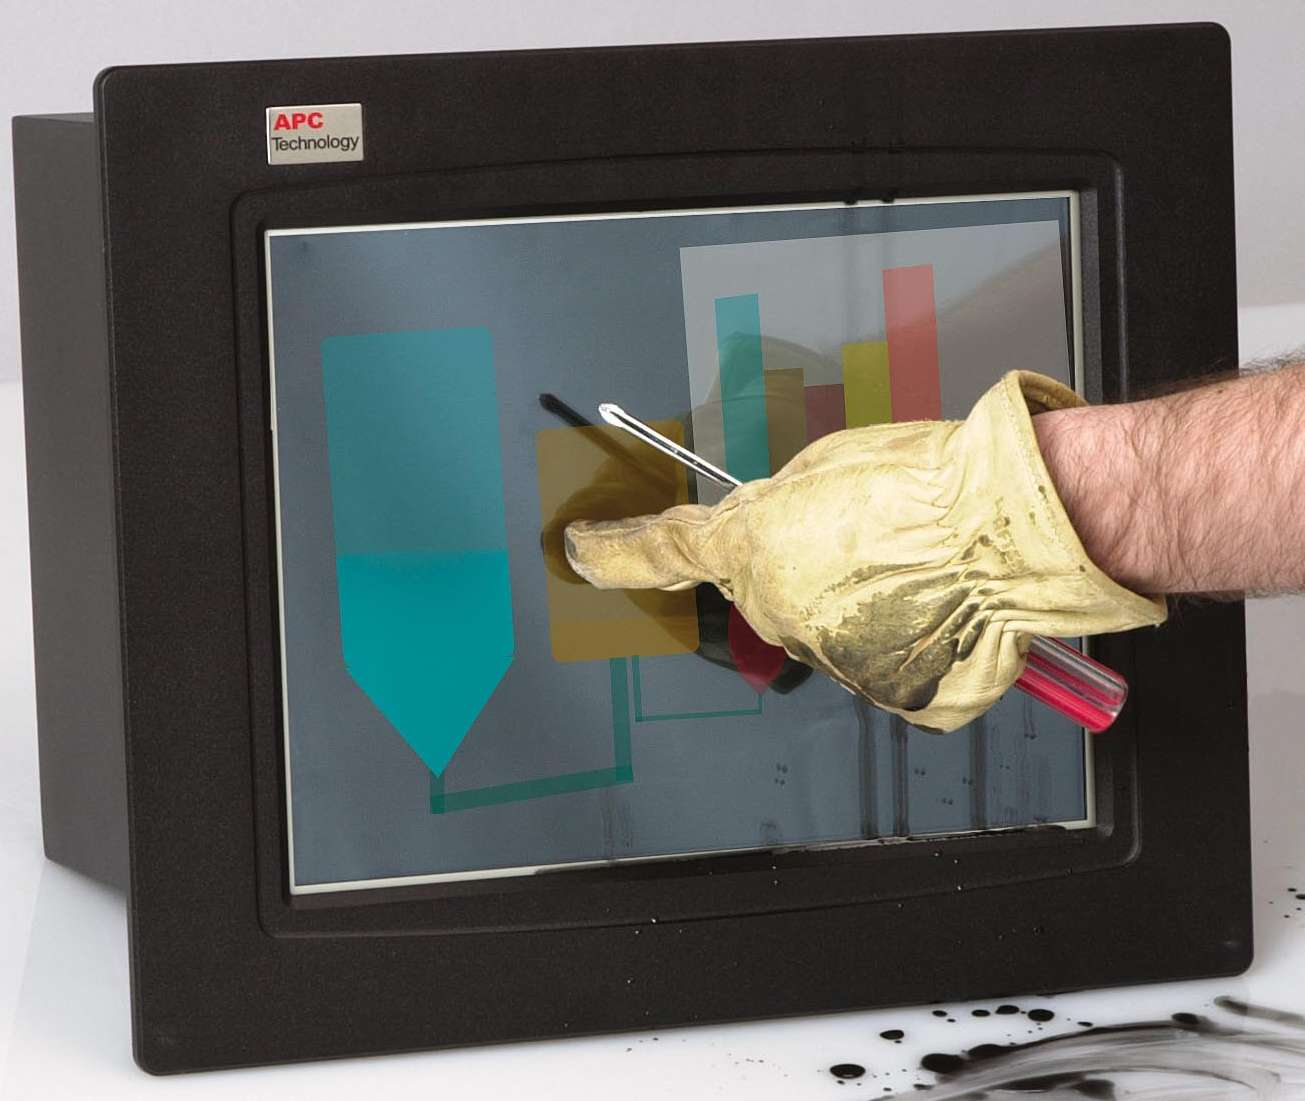 High Quality Displays & Touch Screens A Key Component Of Automated Systems